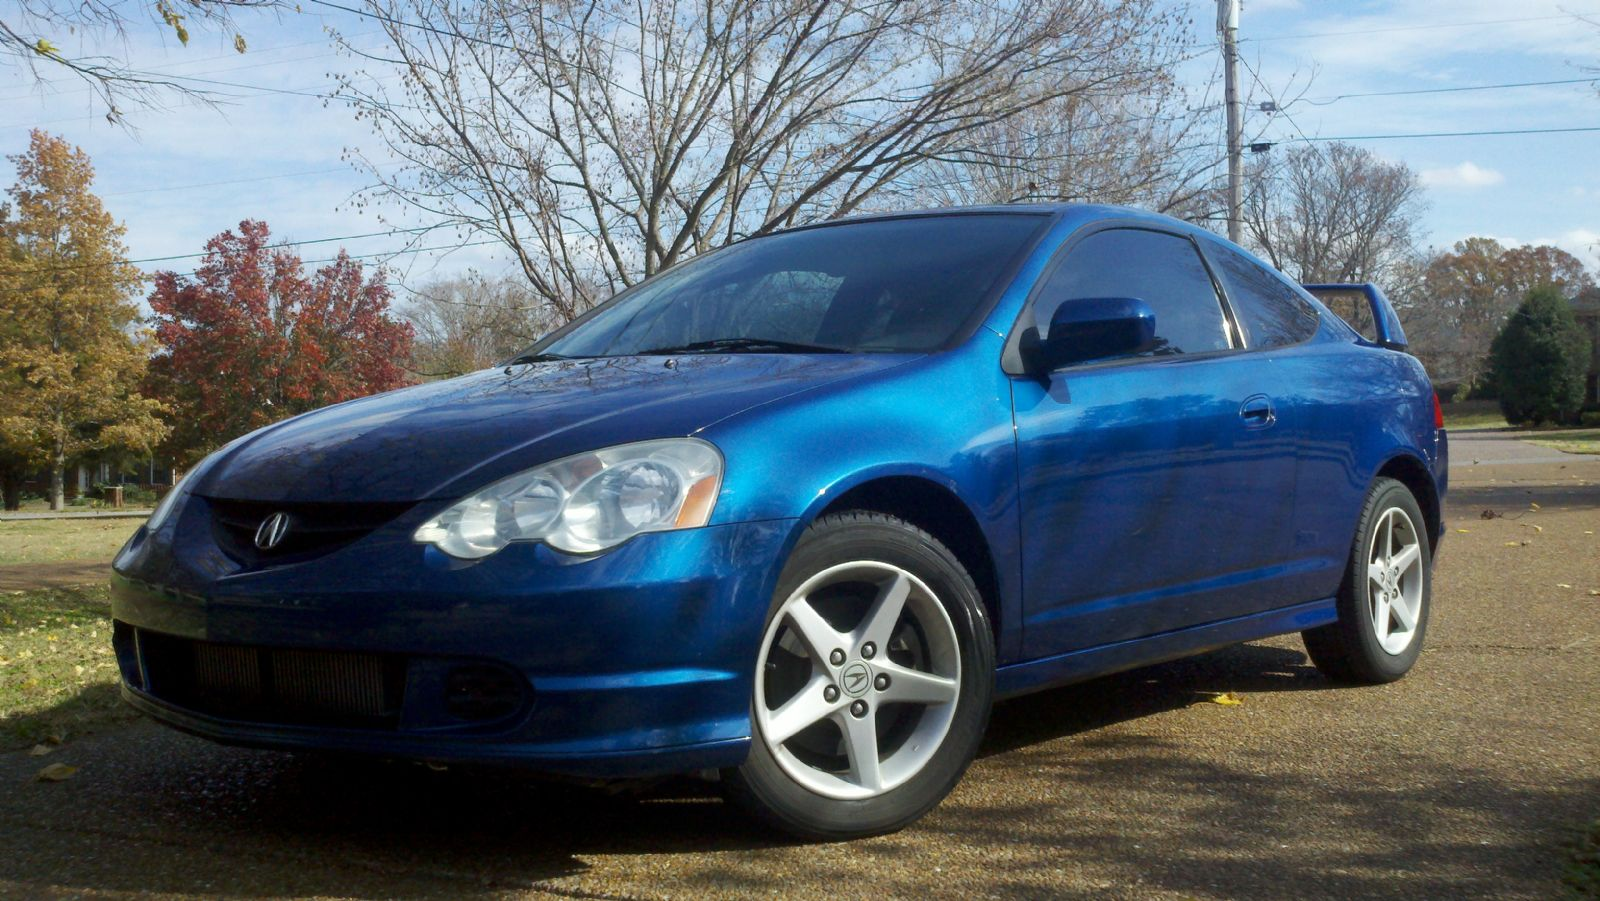 2002 Acura RSX Type-S For Sale | Nashville Tennessee